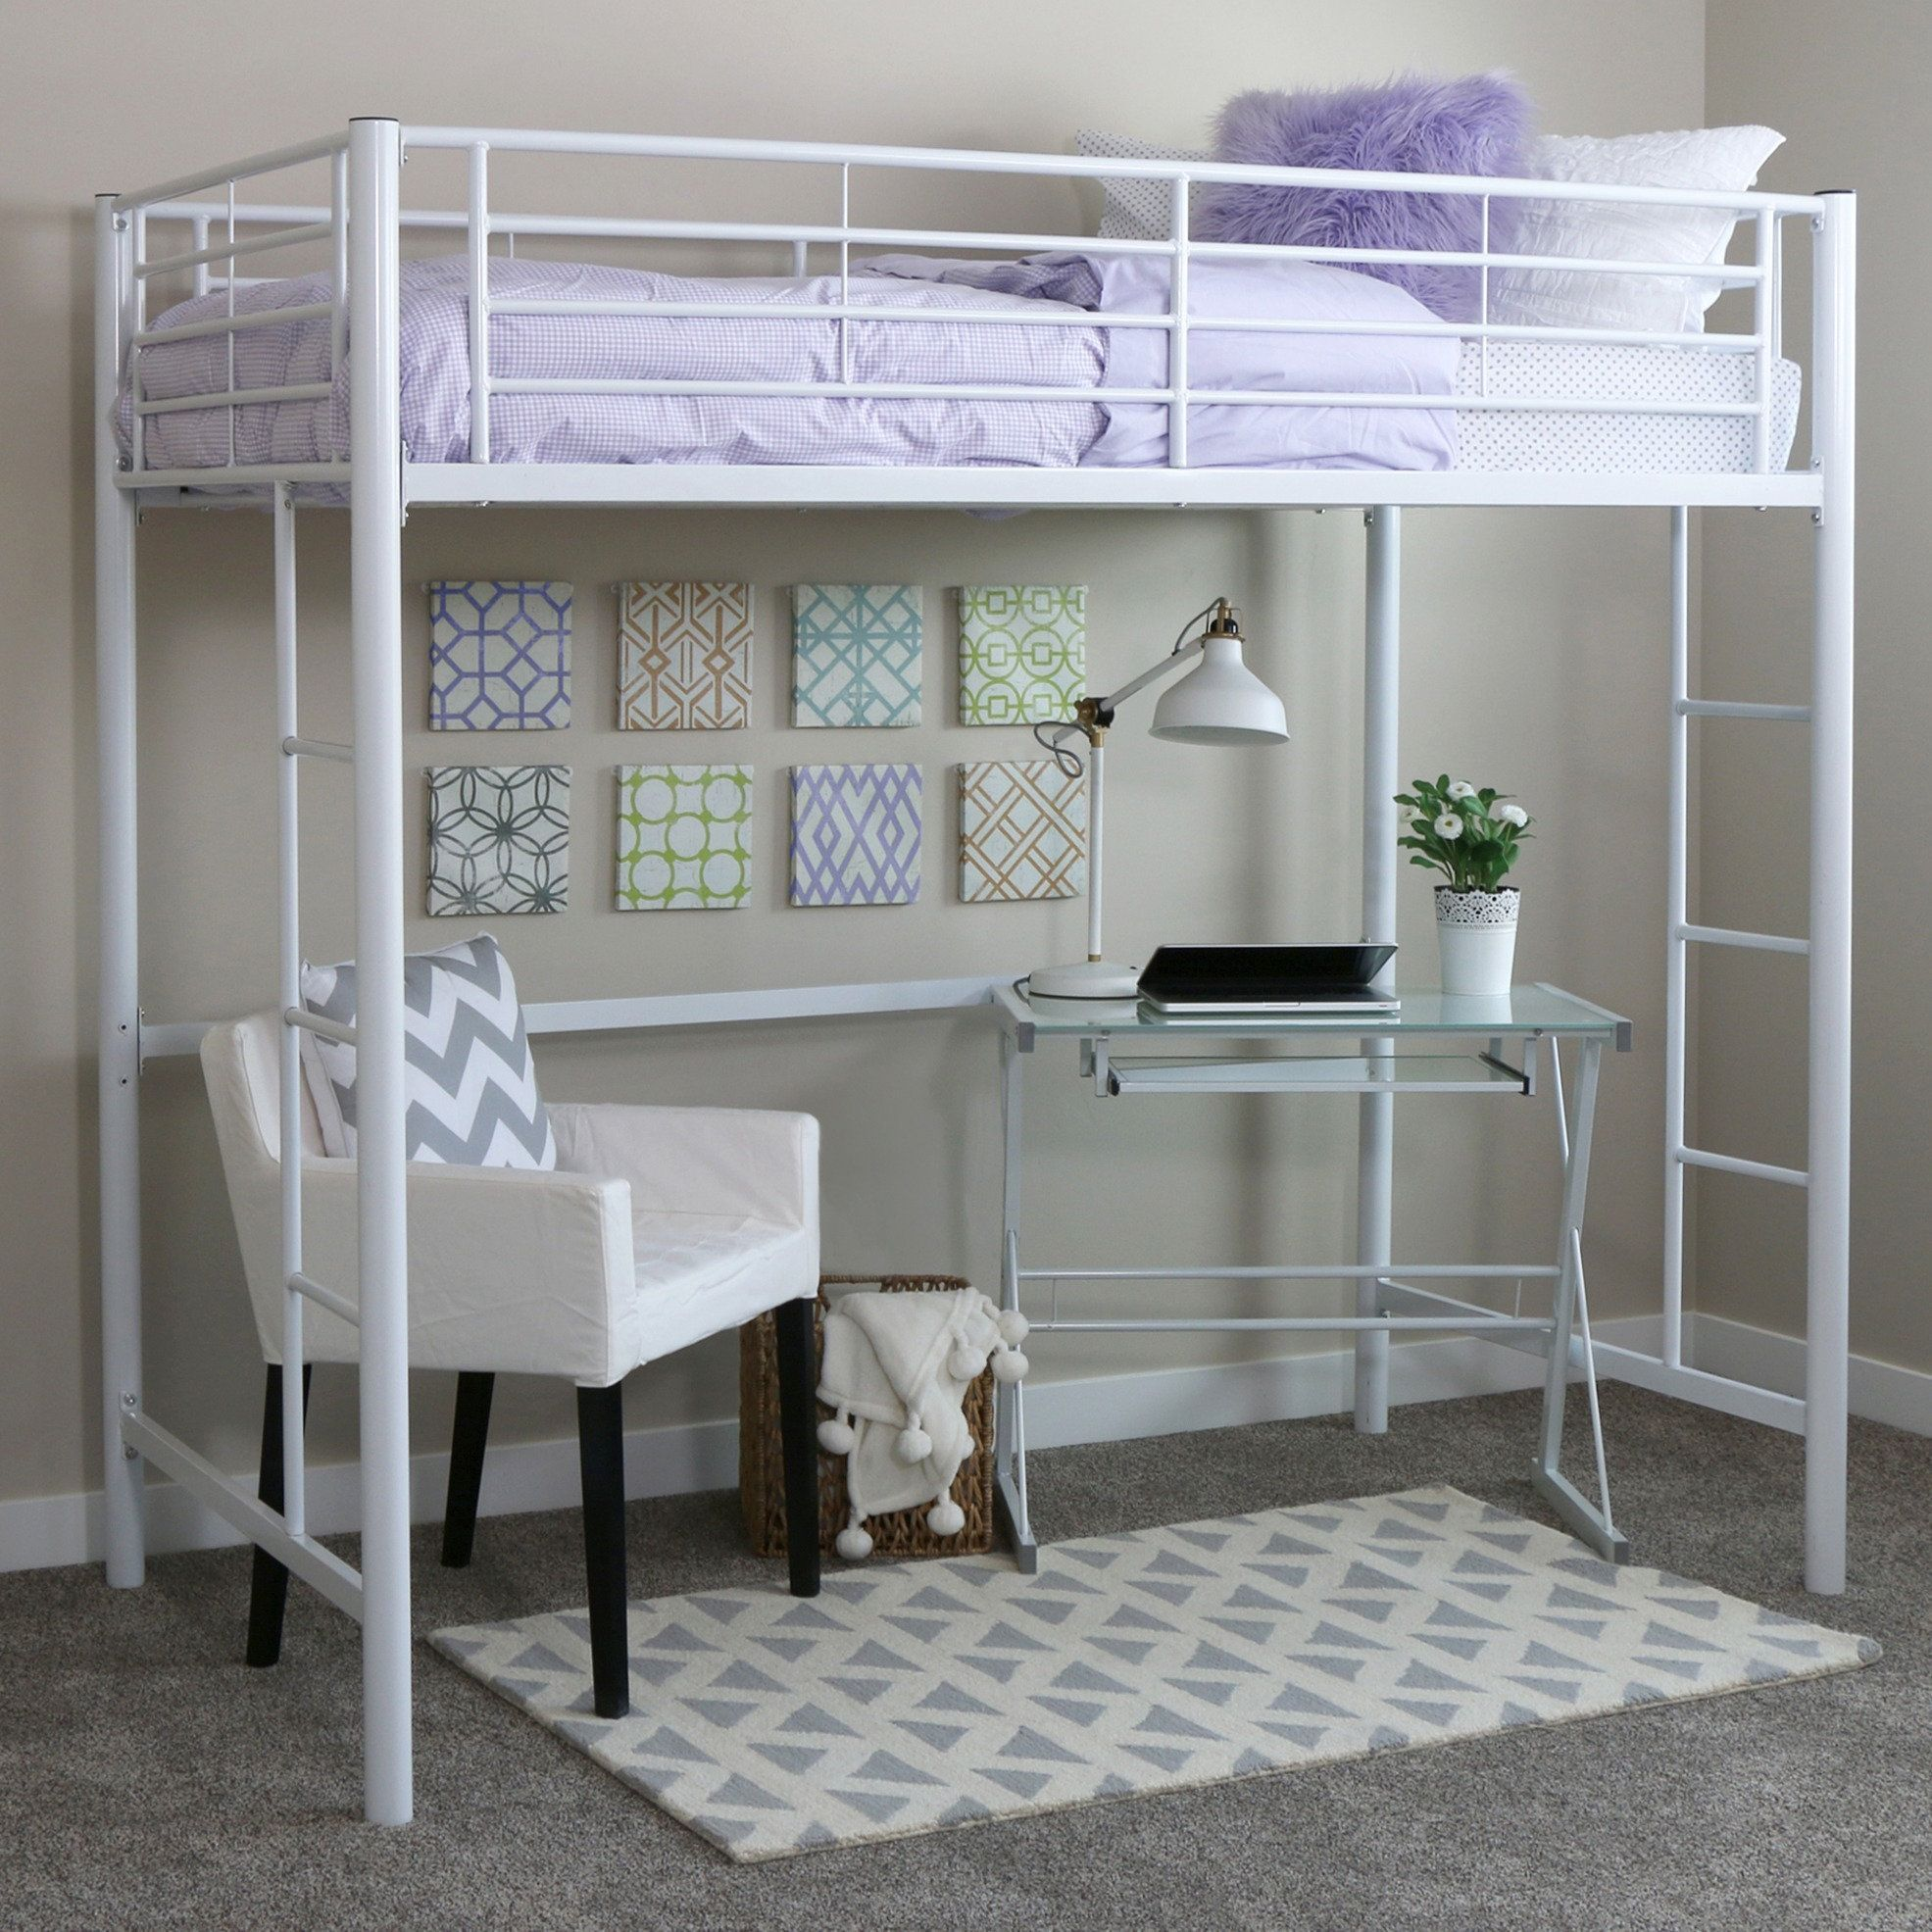 Results For Loft Beds Free Shipping On Orders Over 45 At